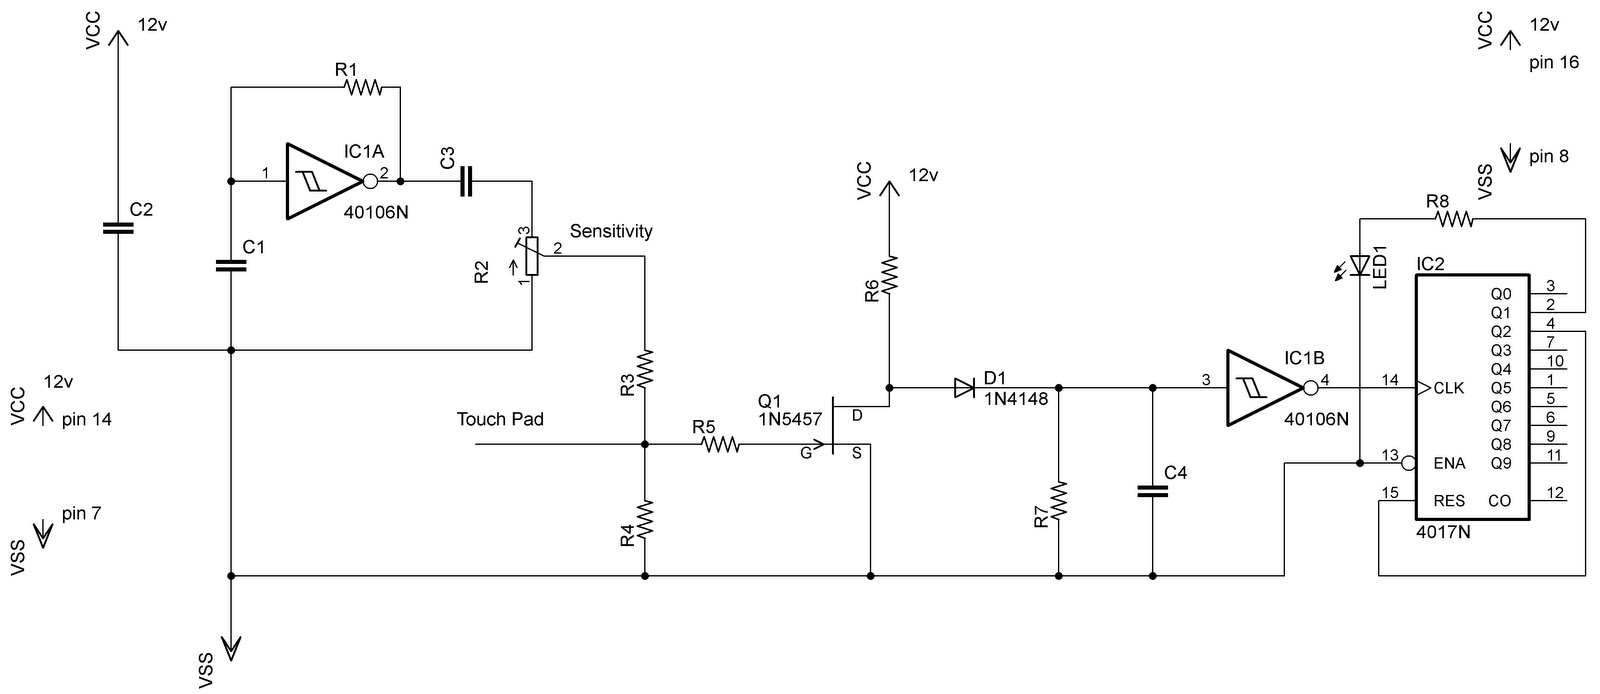 Human Detect Circuit Page 2 Sensors Detectors Circuits Mosfet Switch With Delay Timer Electronic Projects Low Cost Capacitive Touch Ii Schematic Explanation